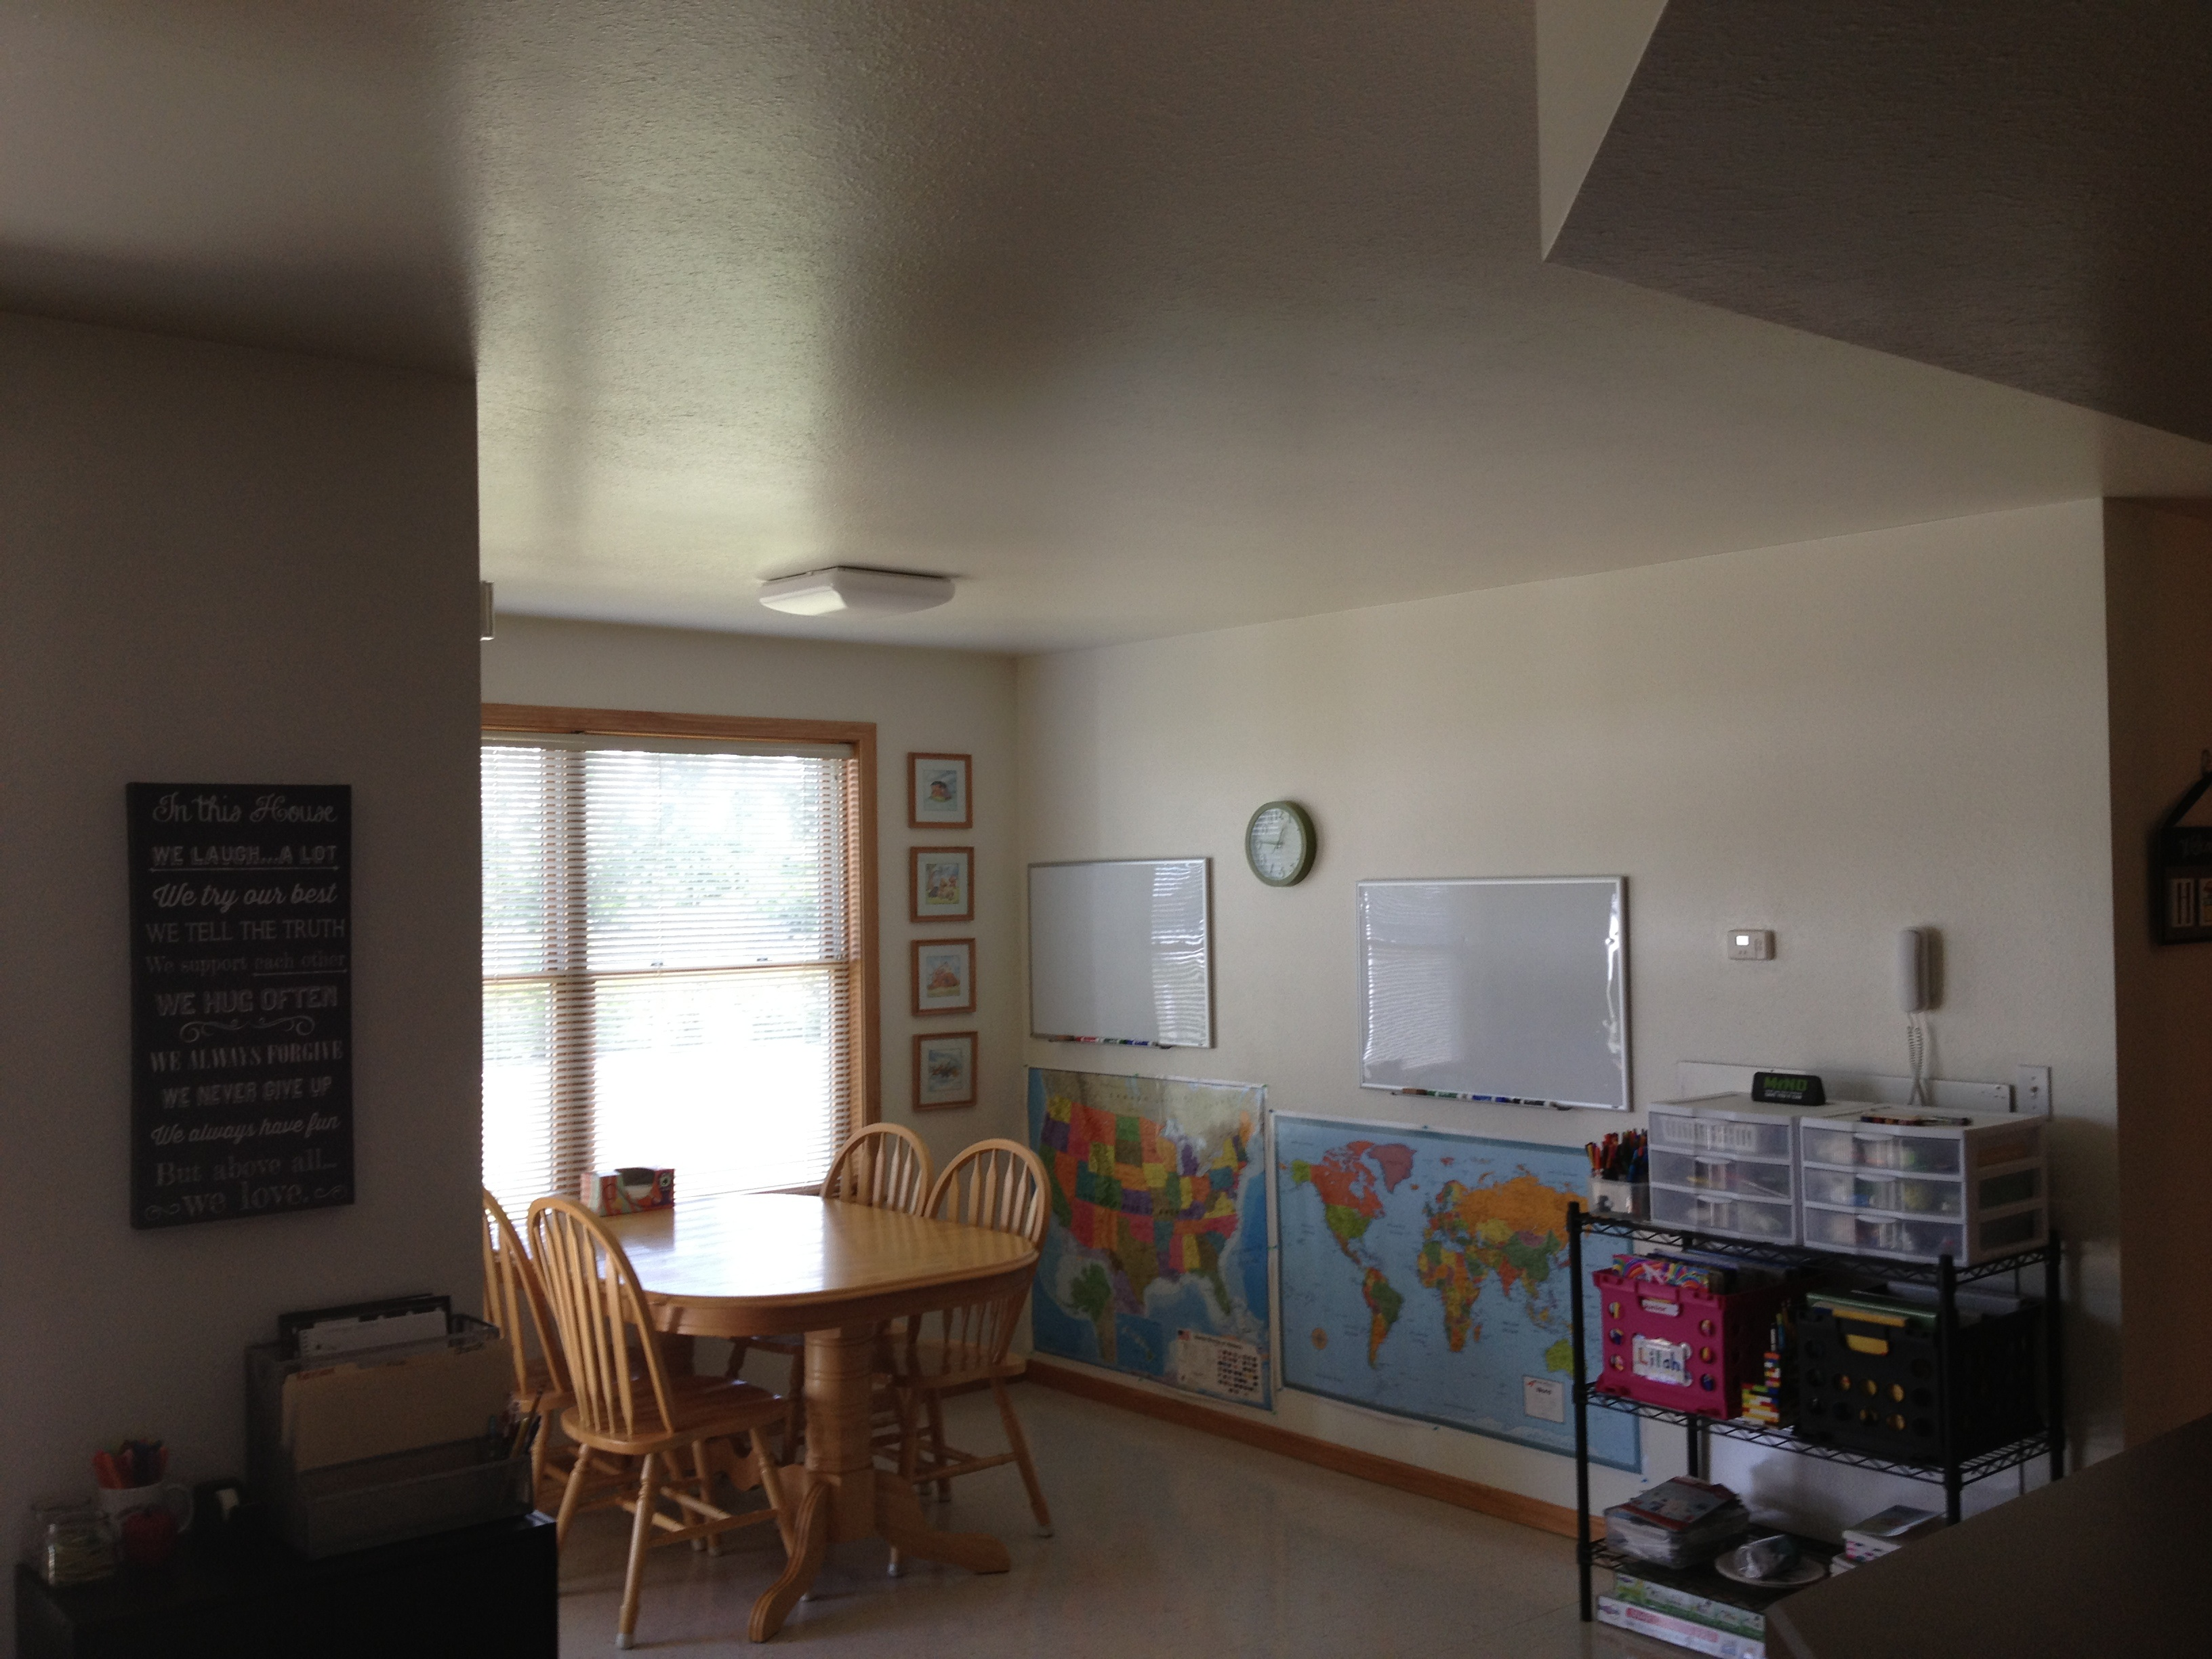 Real Homeschool Classroom Ideas Hip Homeschool Moms